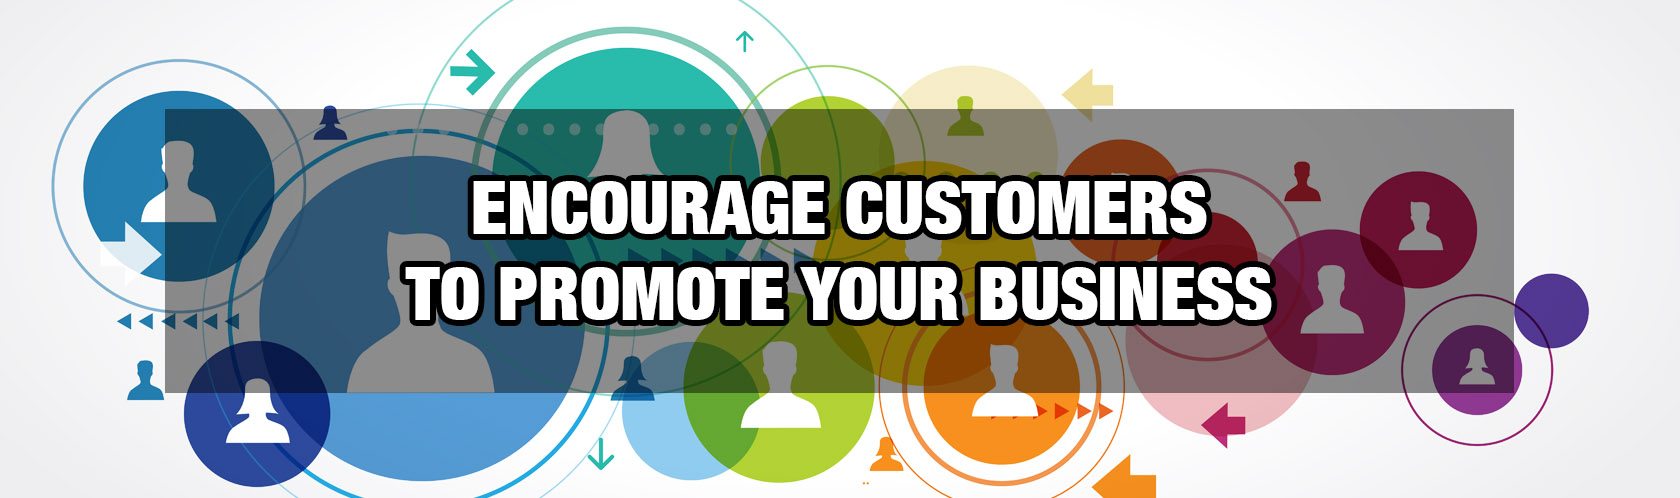 Encourage Customers to Promote your Business